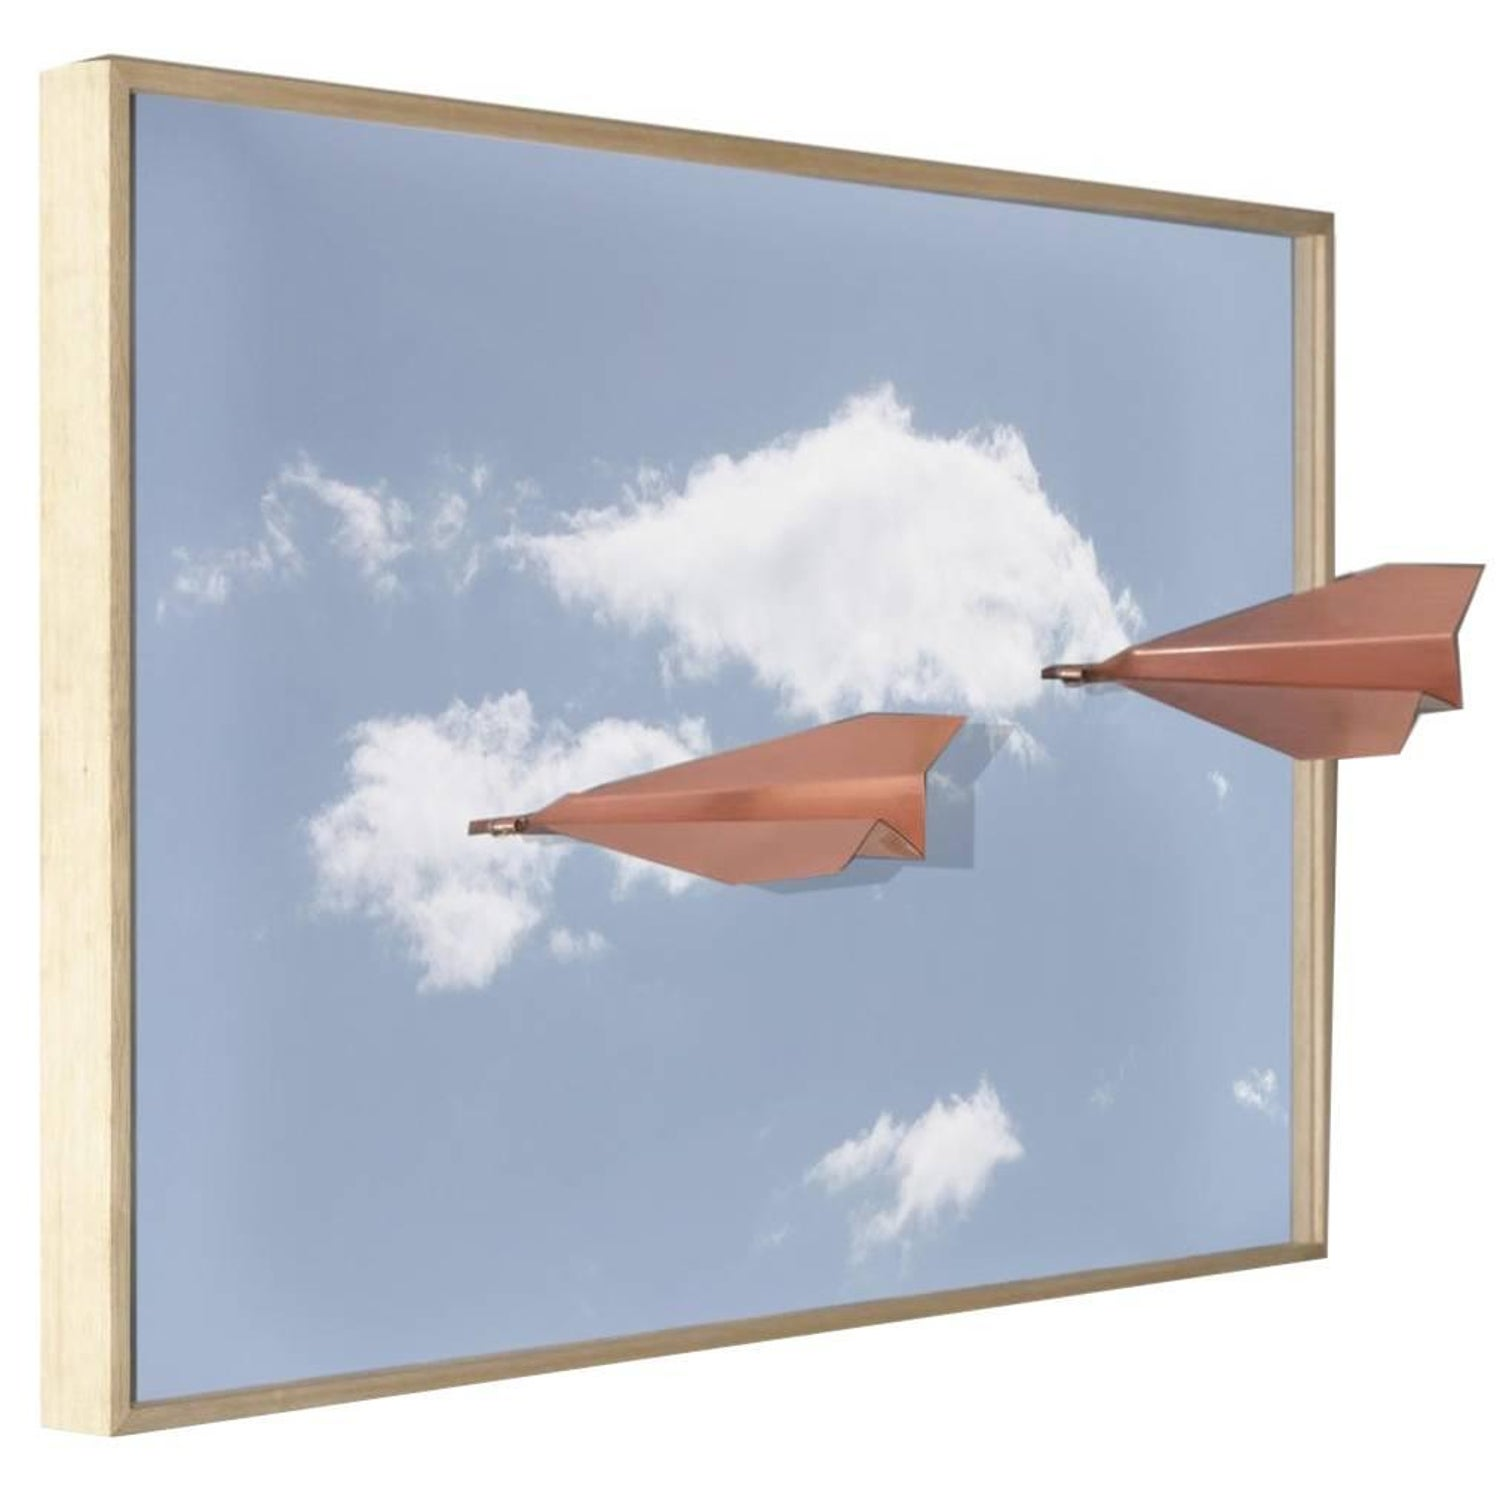 Airplane on a frame picture for sale at 1stdibs jeuxipadfo Gallery